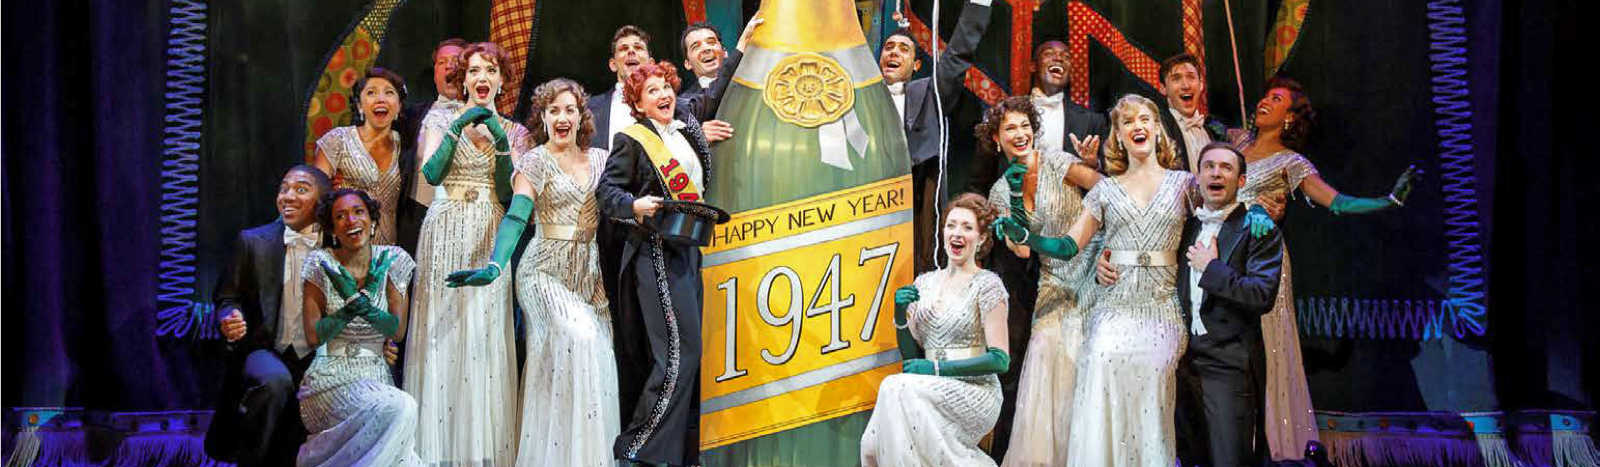 The cast of Irving Berlin's Holiday Inn - The Broadway Musical